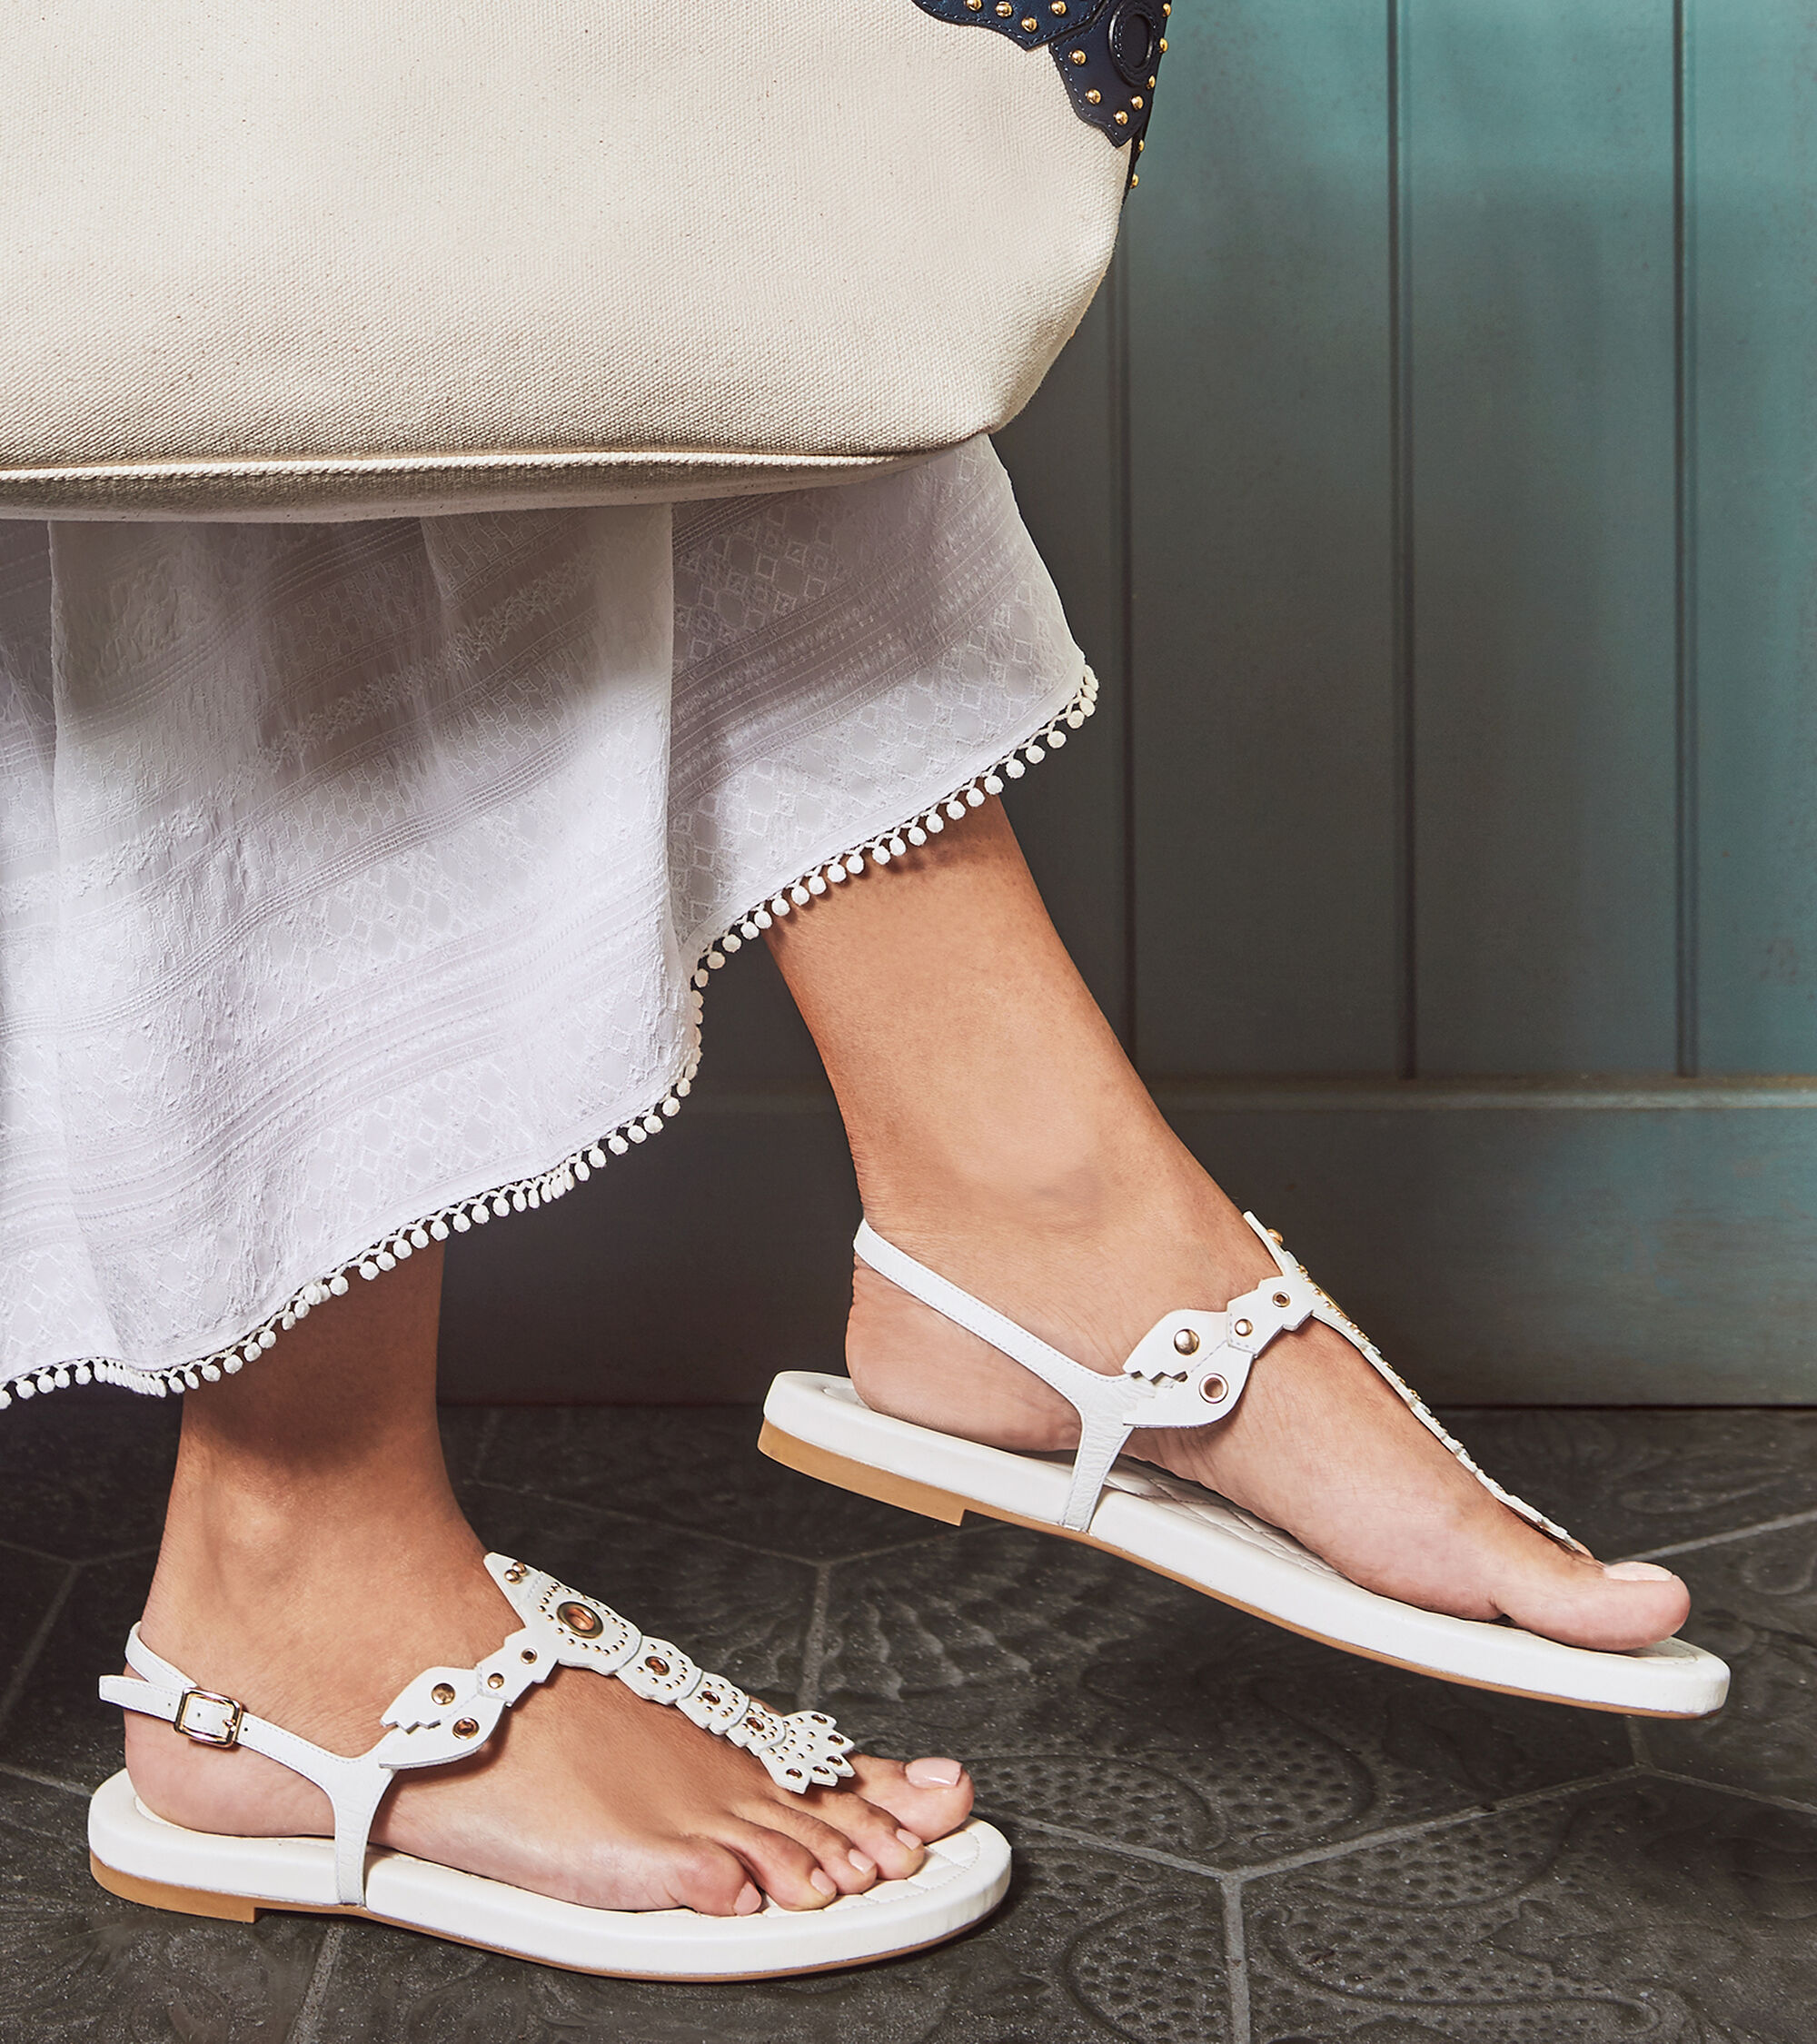 eb614e2ceeec1 Women s Pinch Lobster Sandals in White Leather